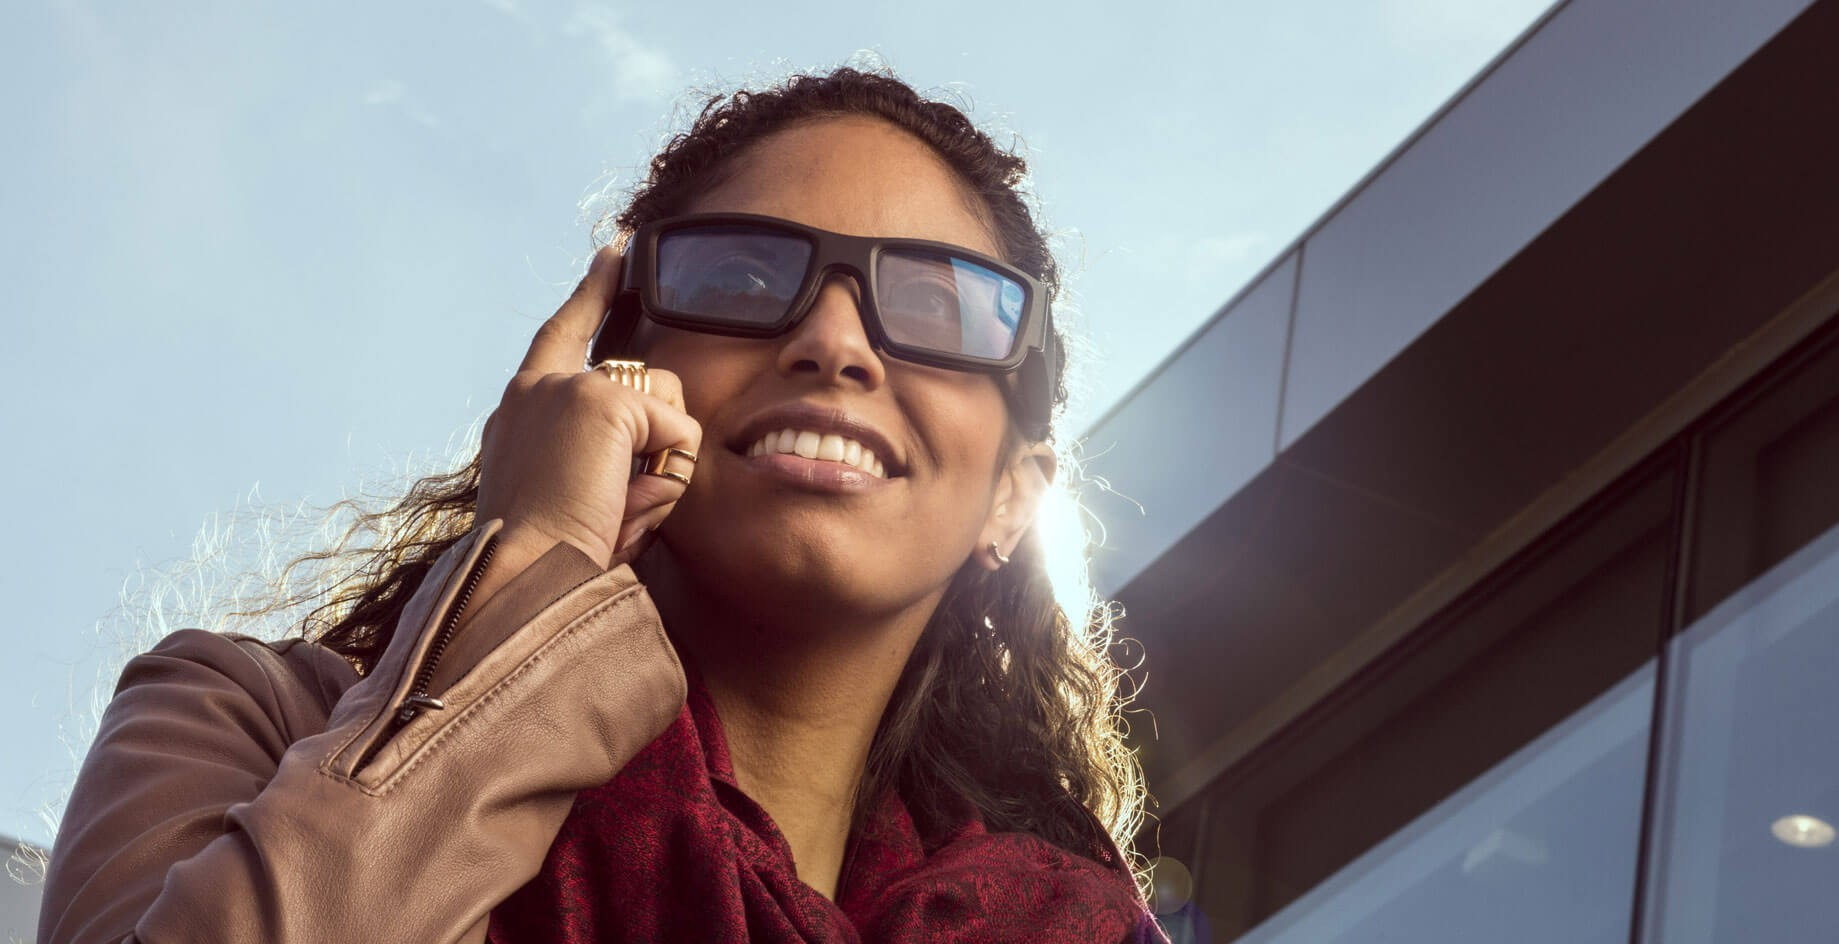 db050b8db3a Smart glasses that let you see your smartphone screen that is out of sight